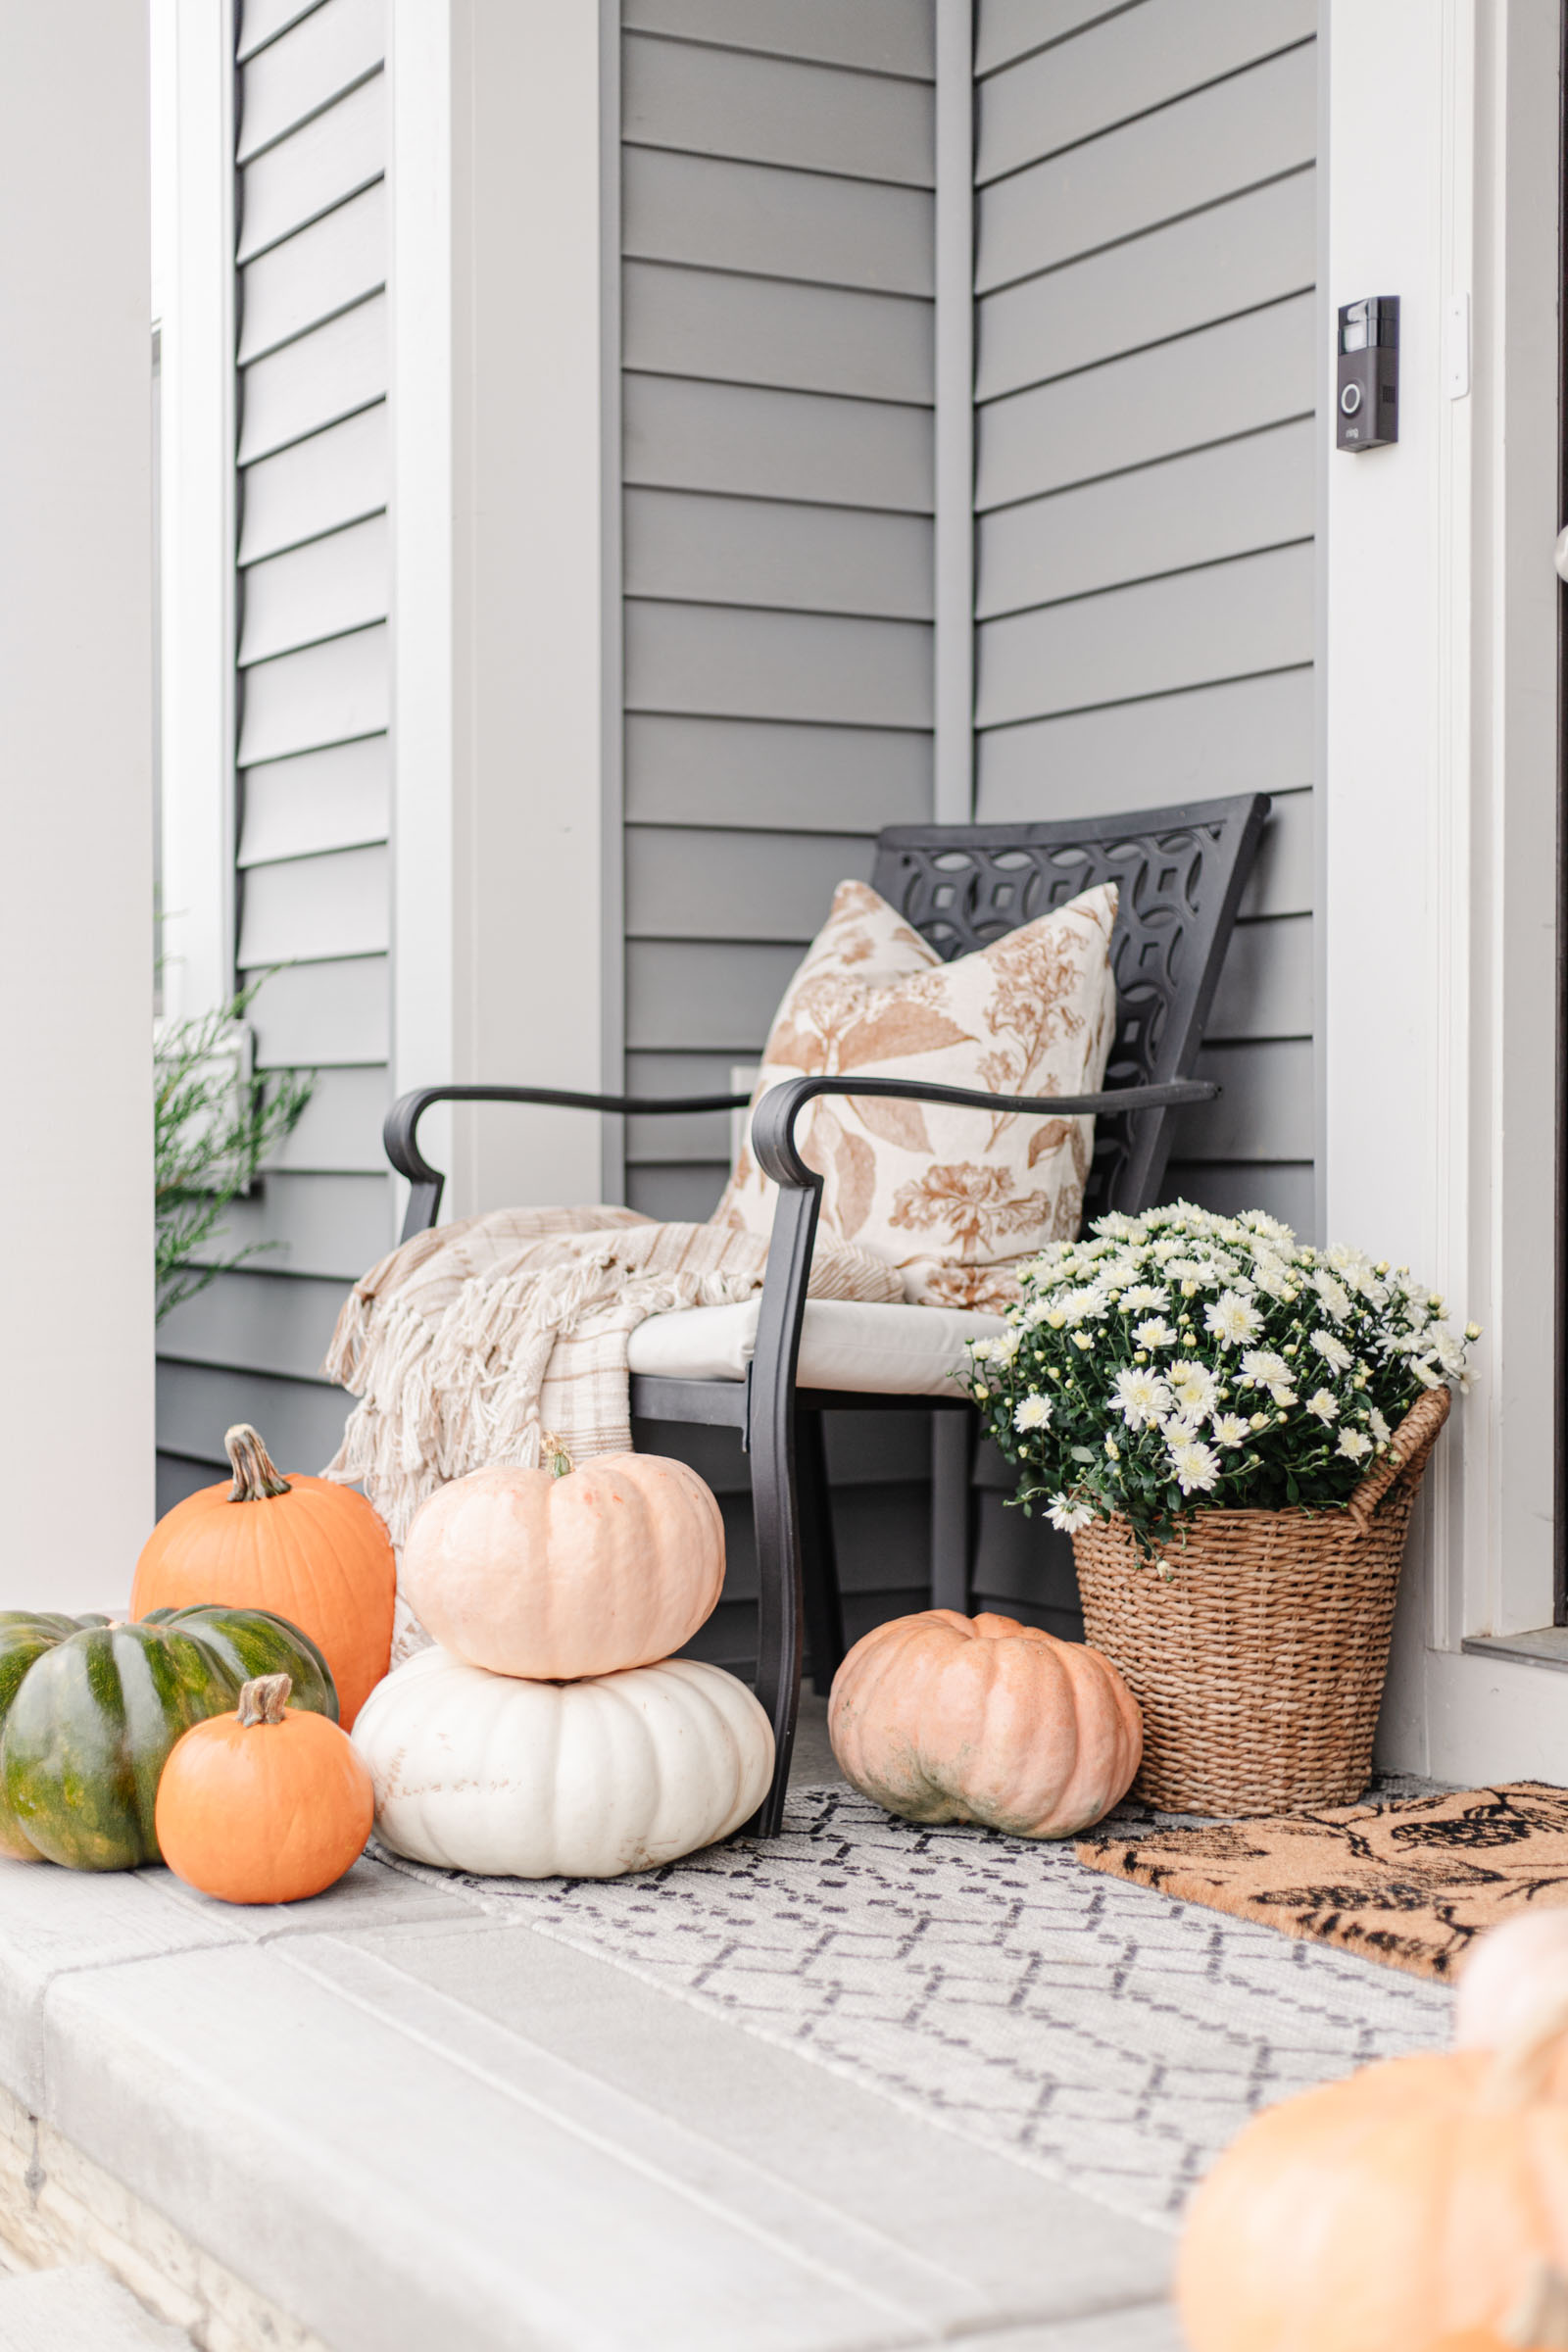 fairytale cinderella pumpkins, cozy fall porch, fall aesthetic, white mums, layered doormats, plaid throw